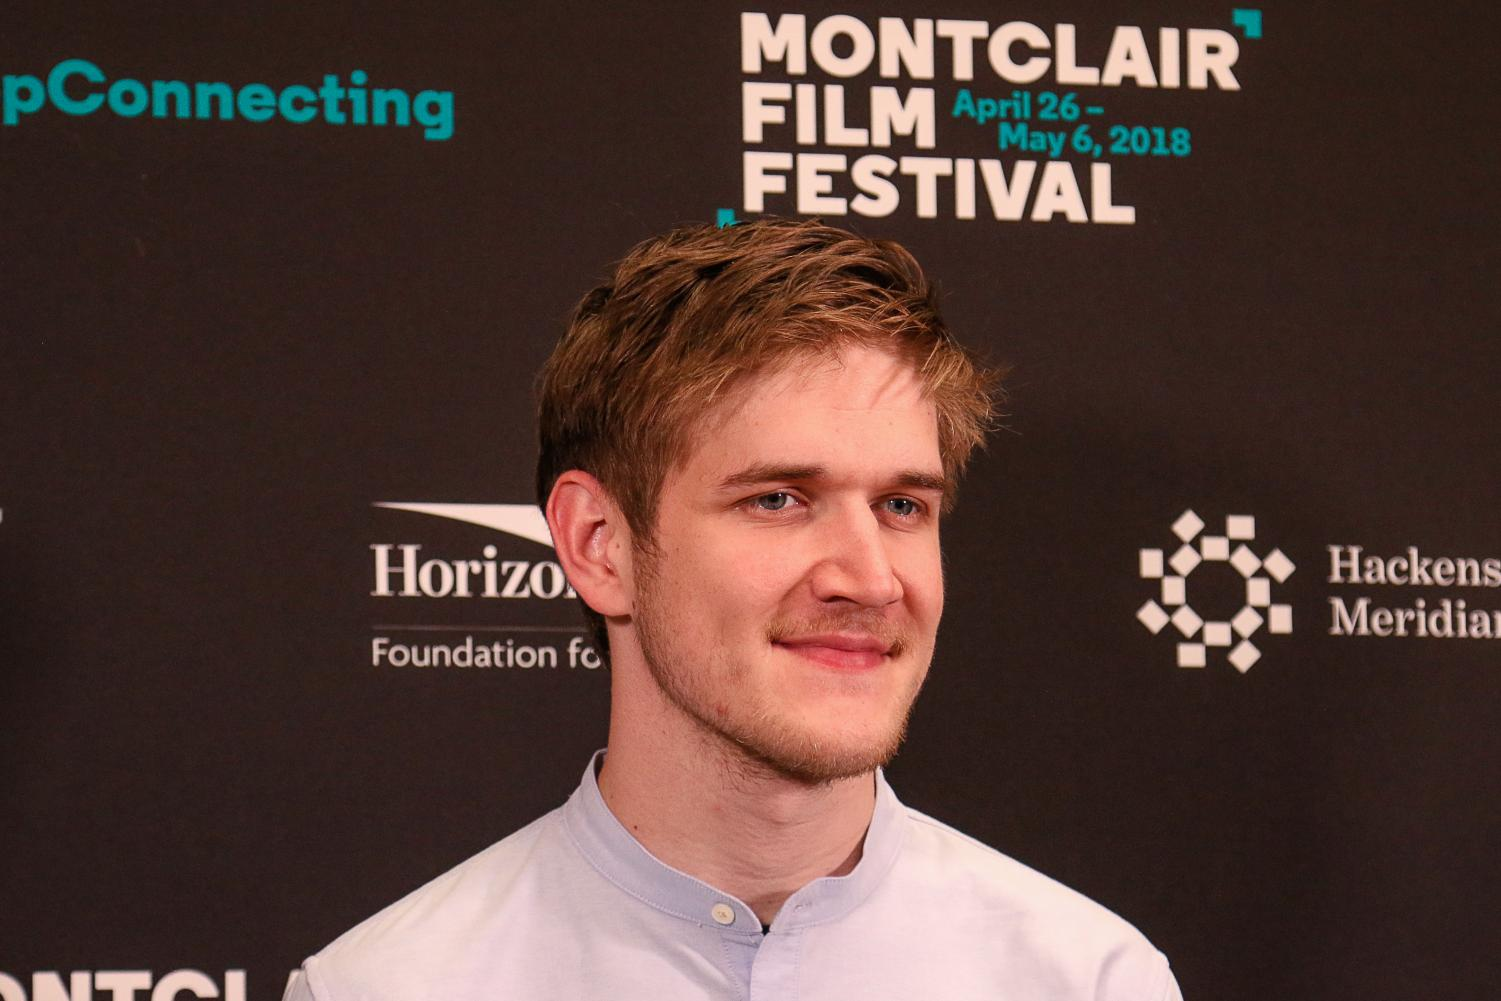 Bo Burnham's film premiered at the 2018 Sundance Film Festival.